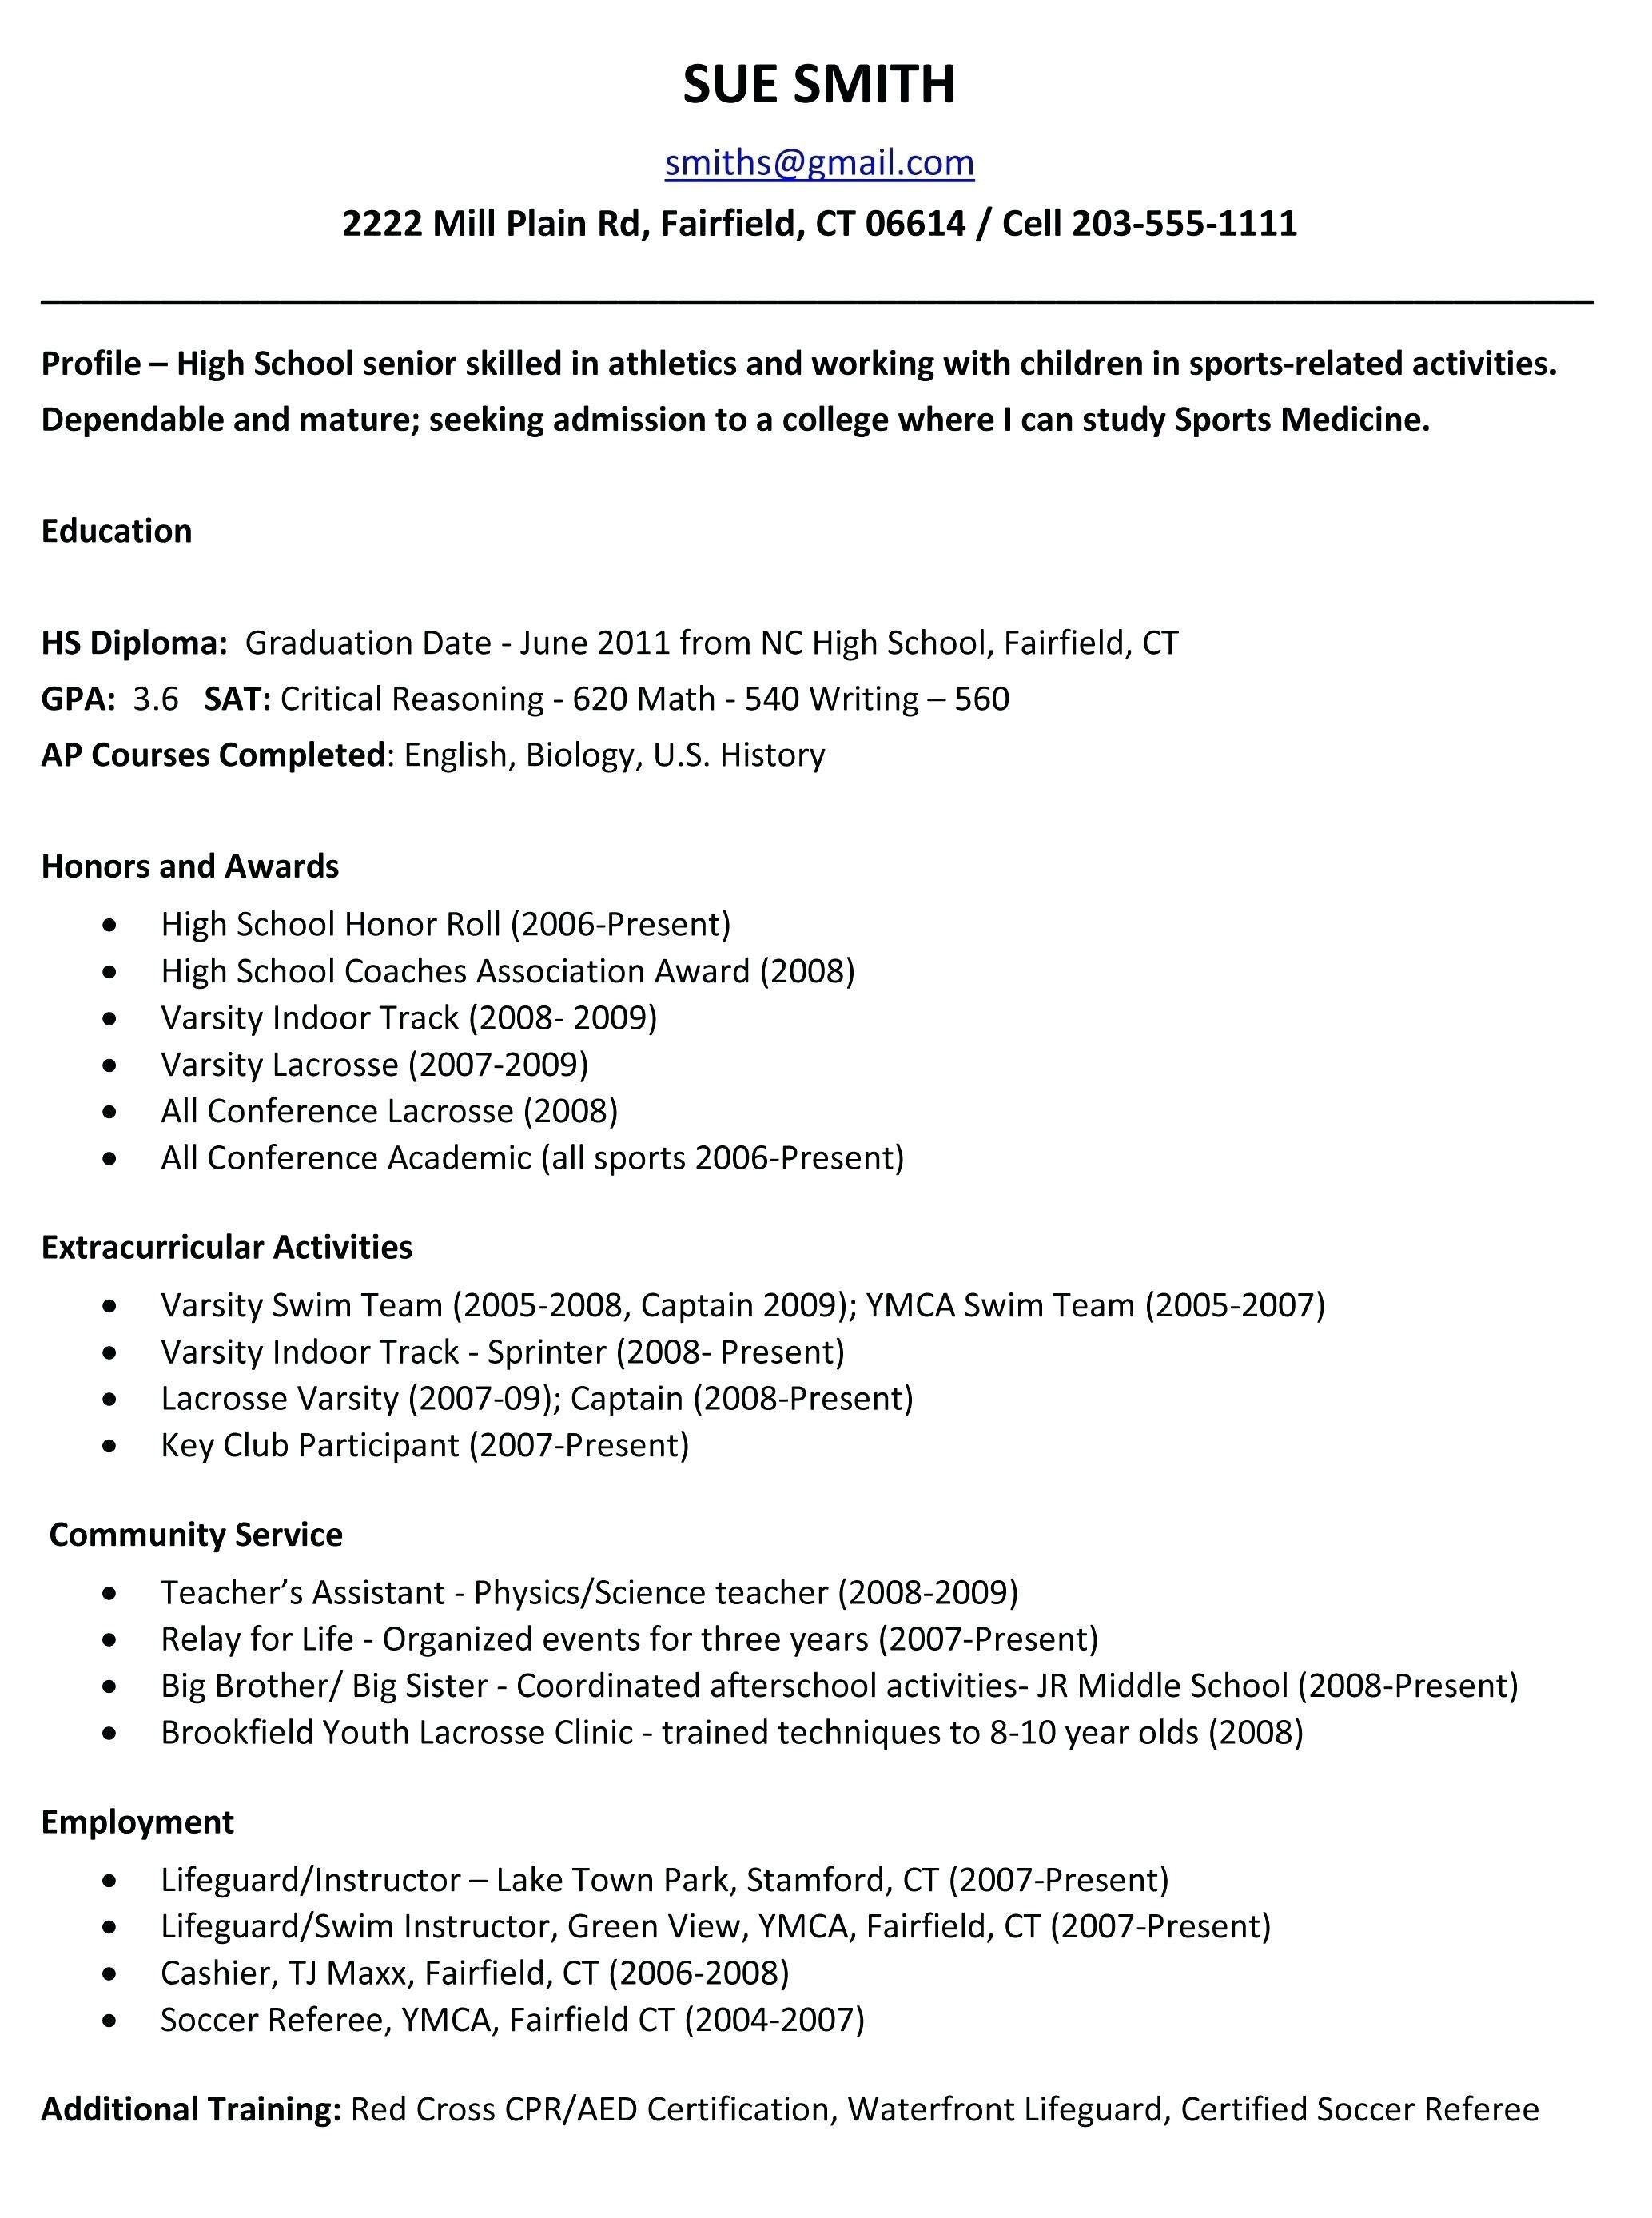 Student Resume Examples And Templates High School Resume Template College Application Resume High School Resume Resume template for college students